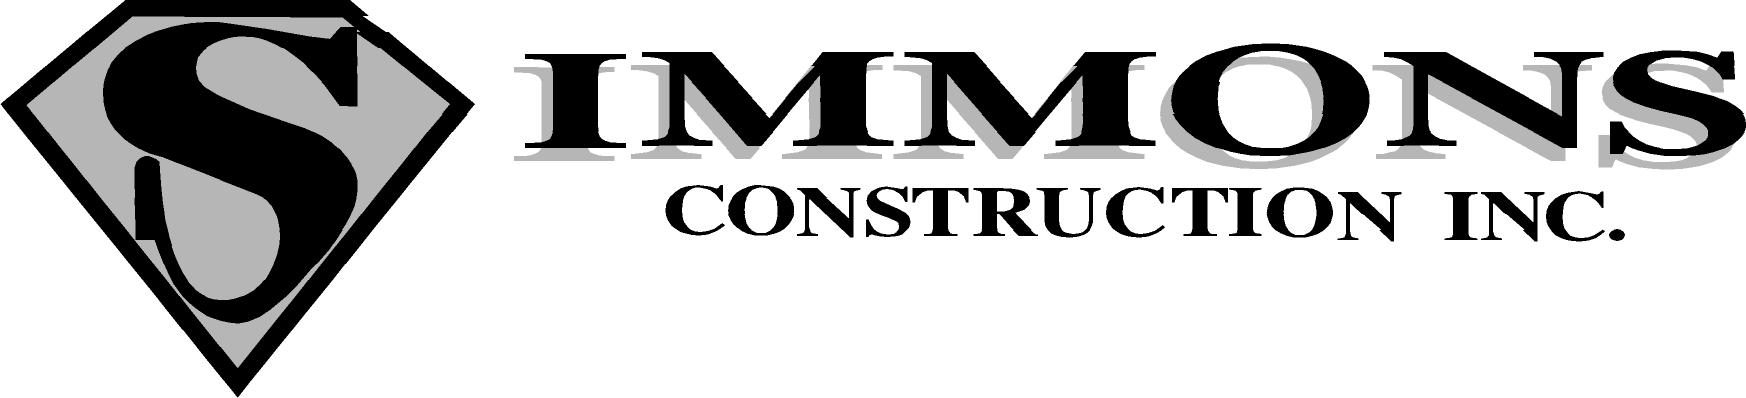 Simmons Construction Inc.